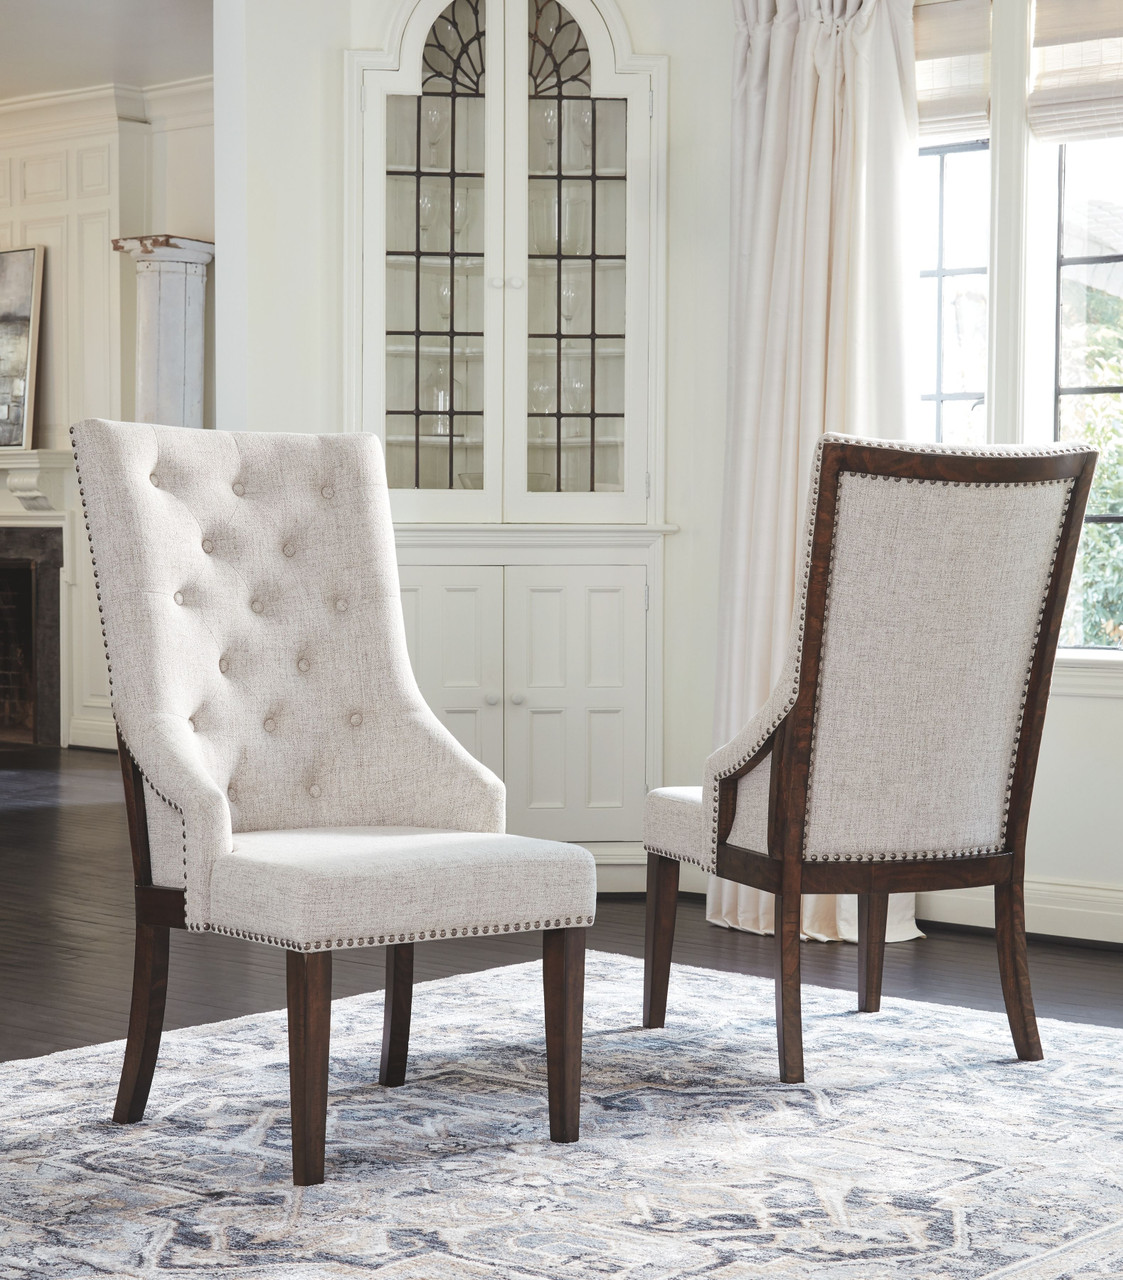 Image of: The Hillcott Dark Brown Beige Dining Upholstered Arm Chair Available At Furniture Connection Serving Clarksville Tennessee And Ft Campbell Kentucky